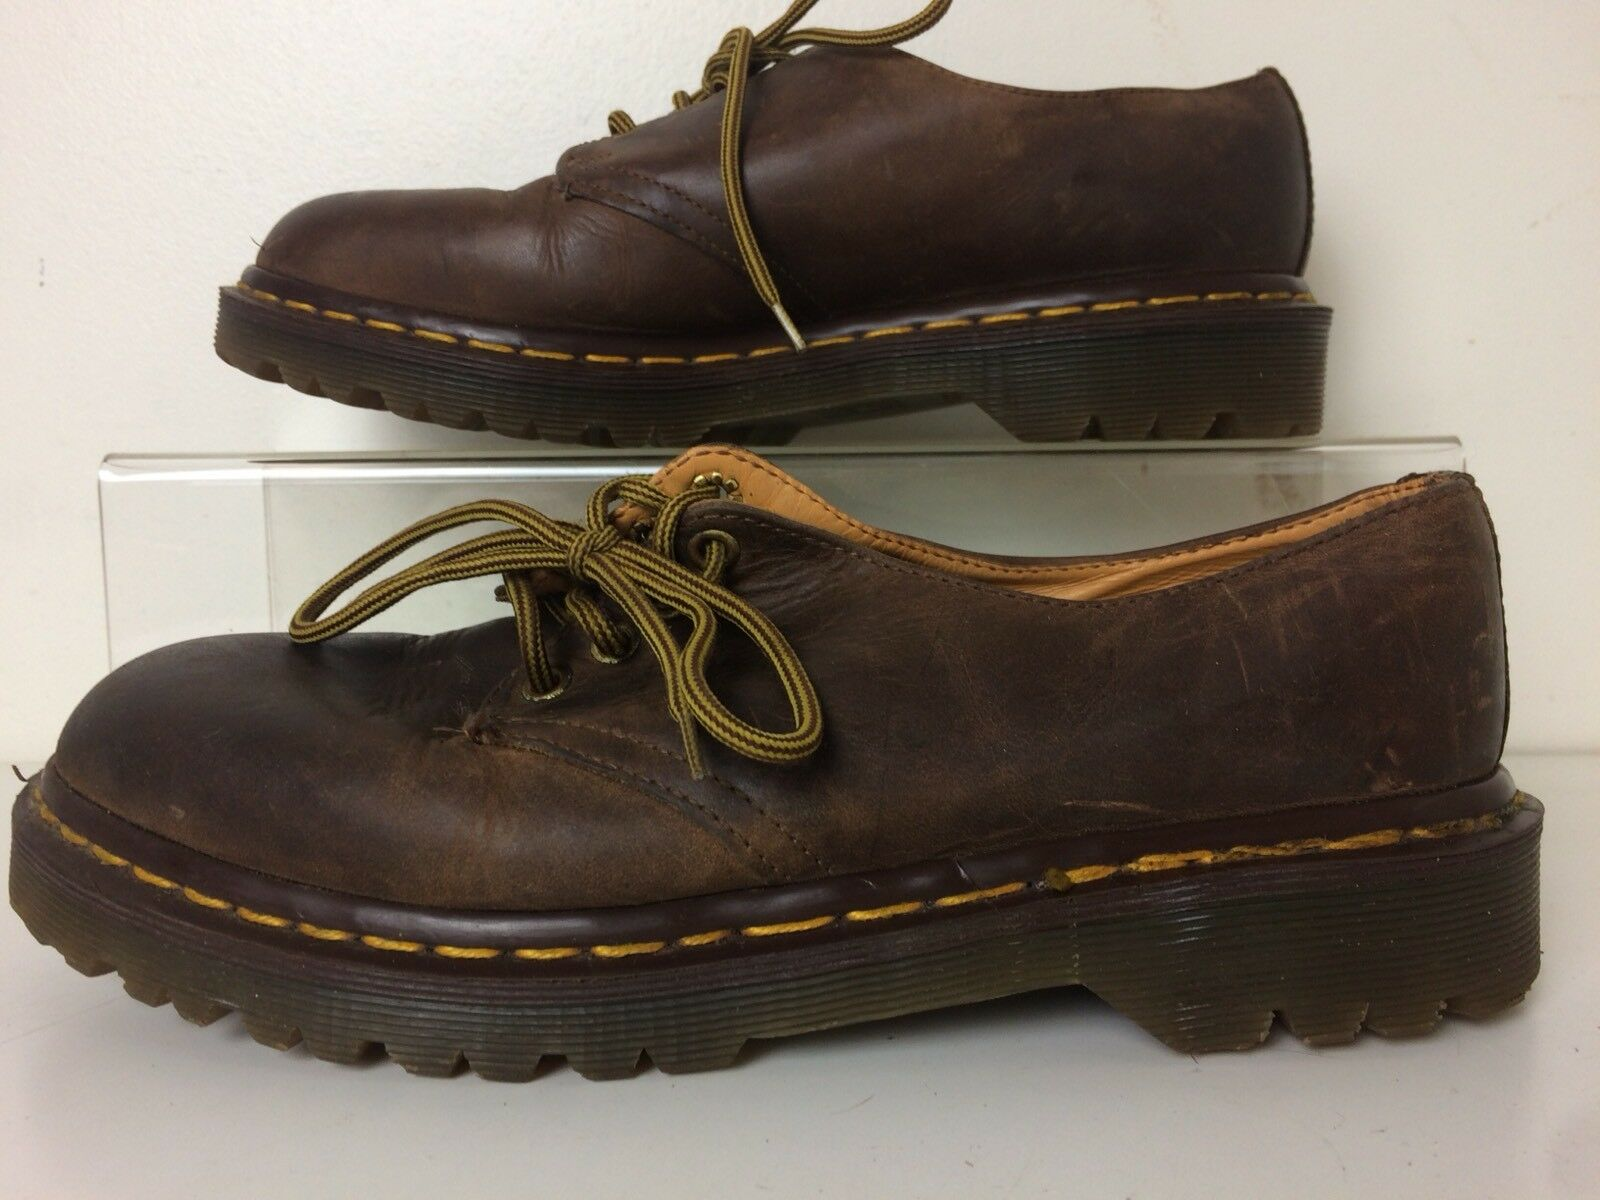 Dr Martens Brown Leather Oxfords Shoes Size Men's US 7 Made in England